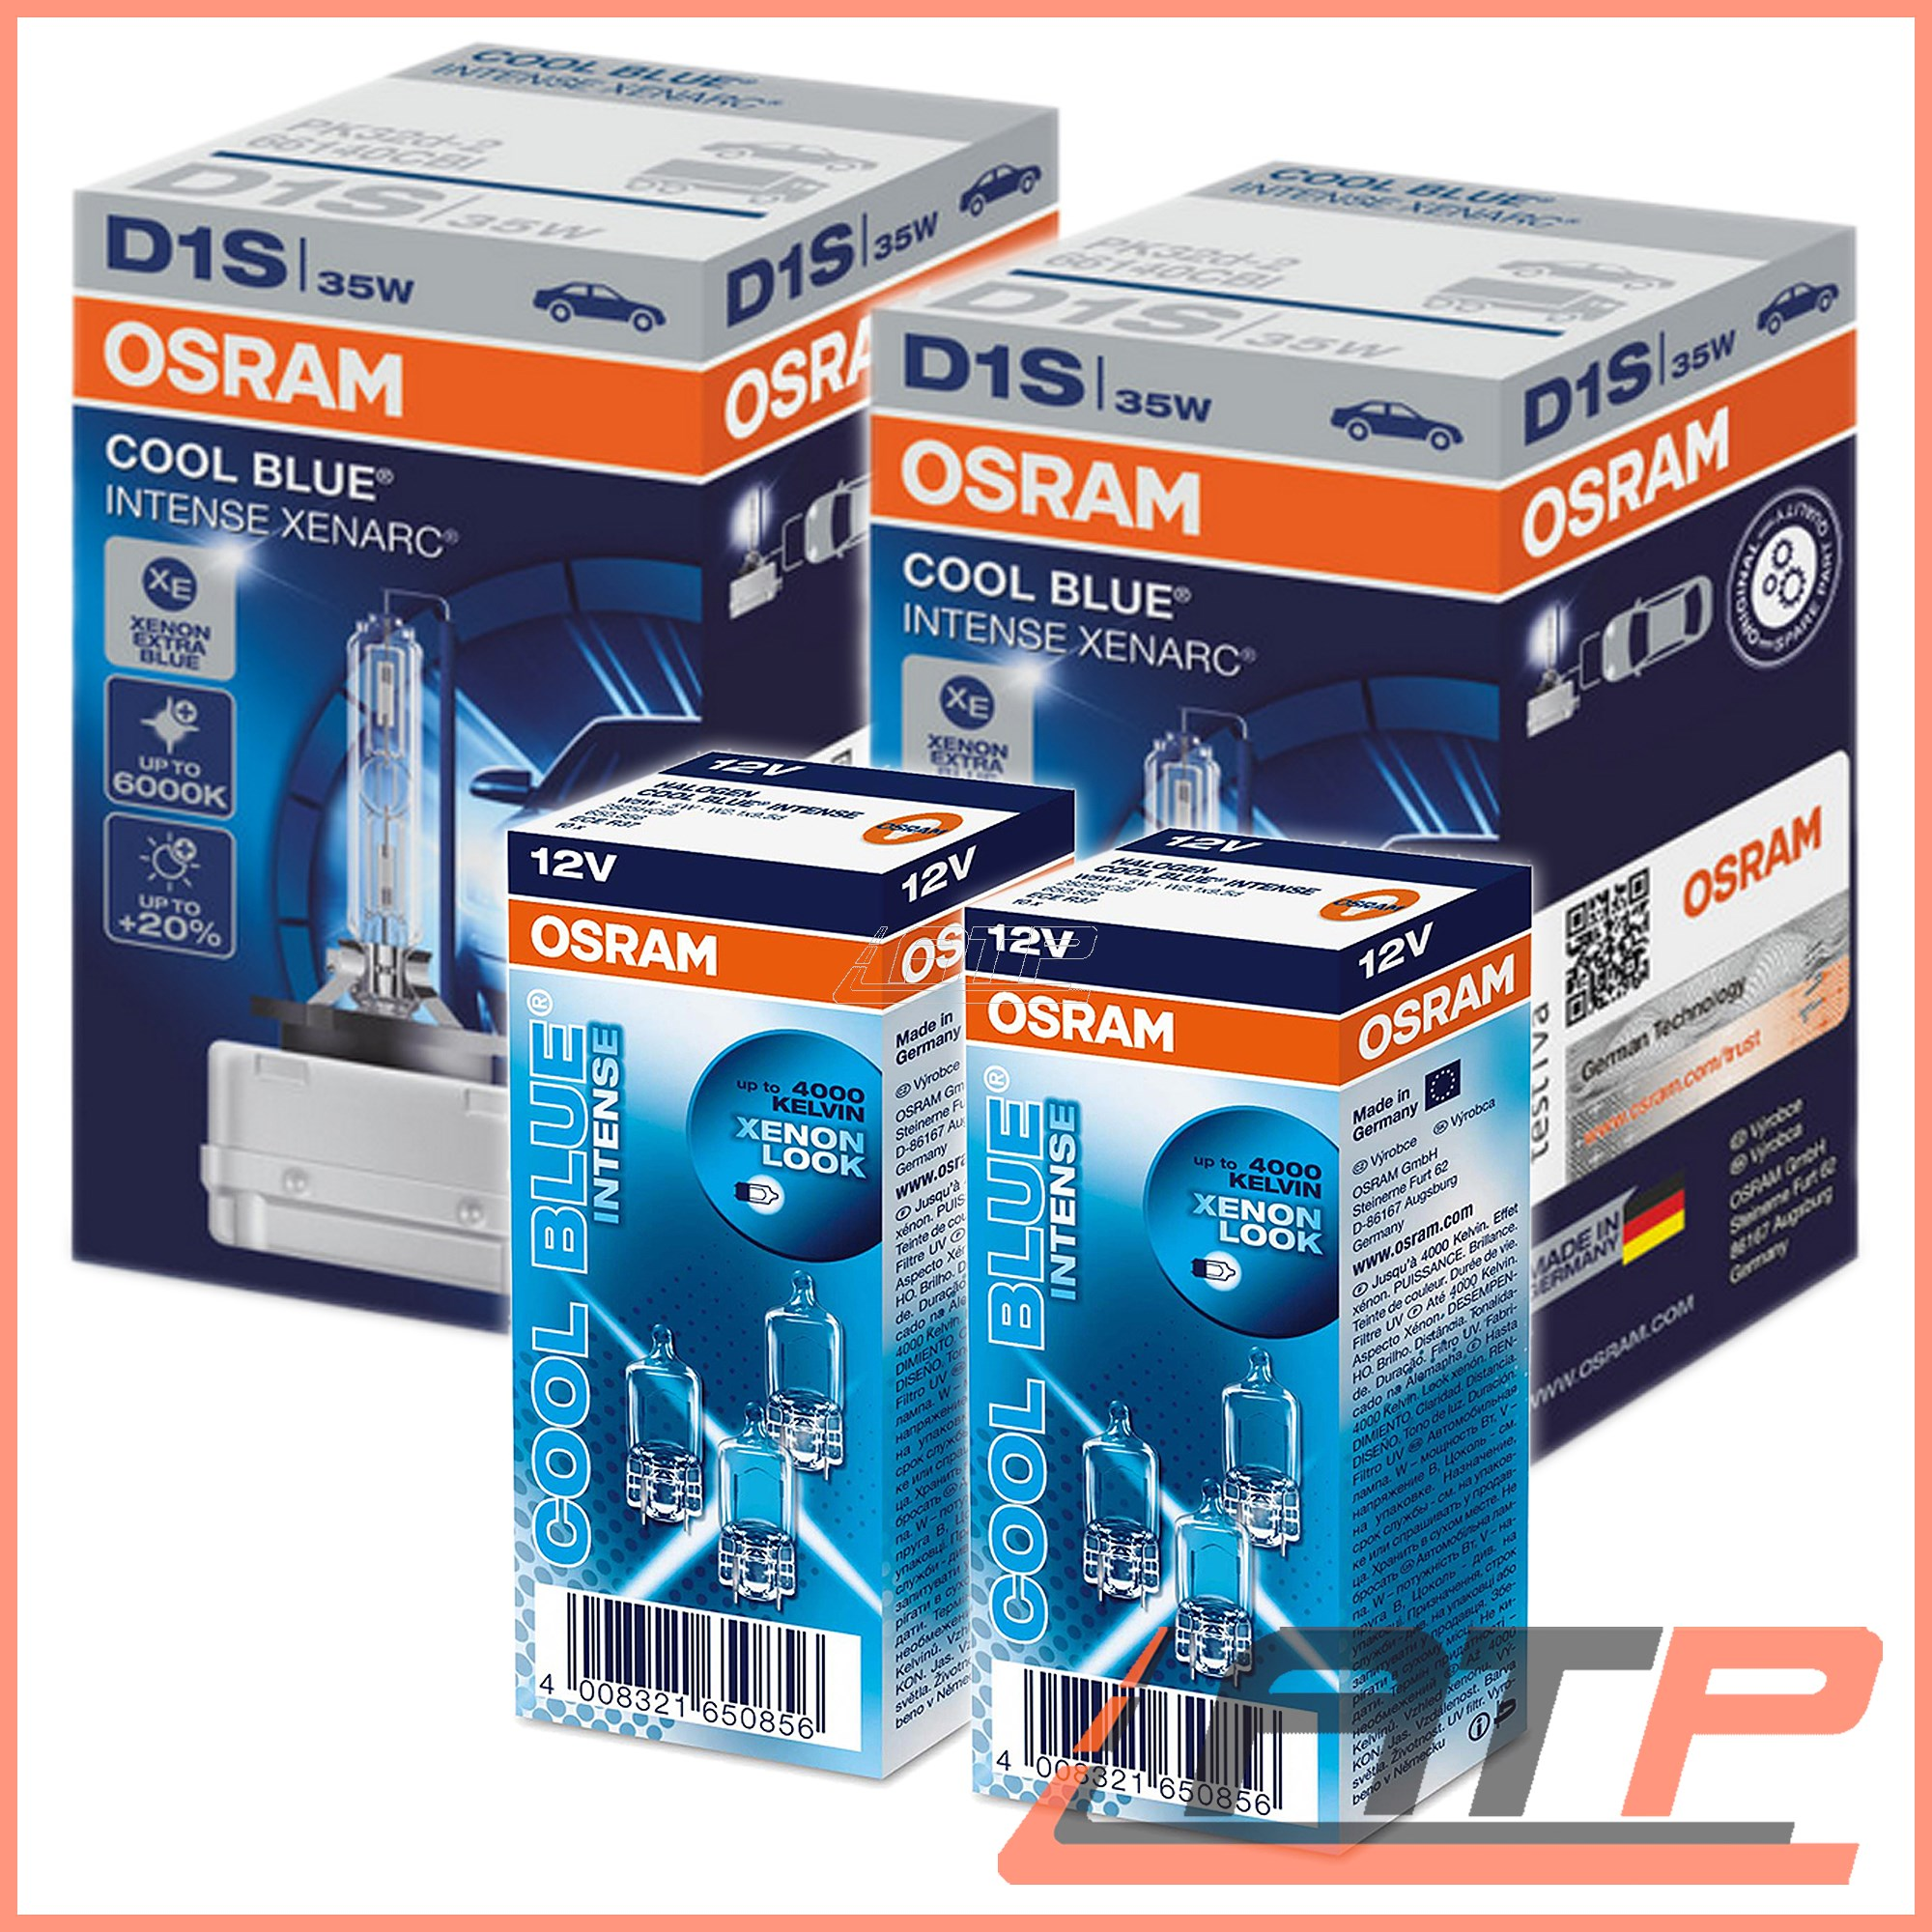 2x VW EOS 1F8 Genuine Osram Original Number Plate Lamp Light Bulbs